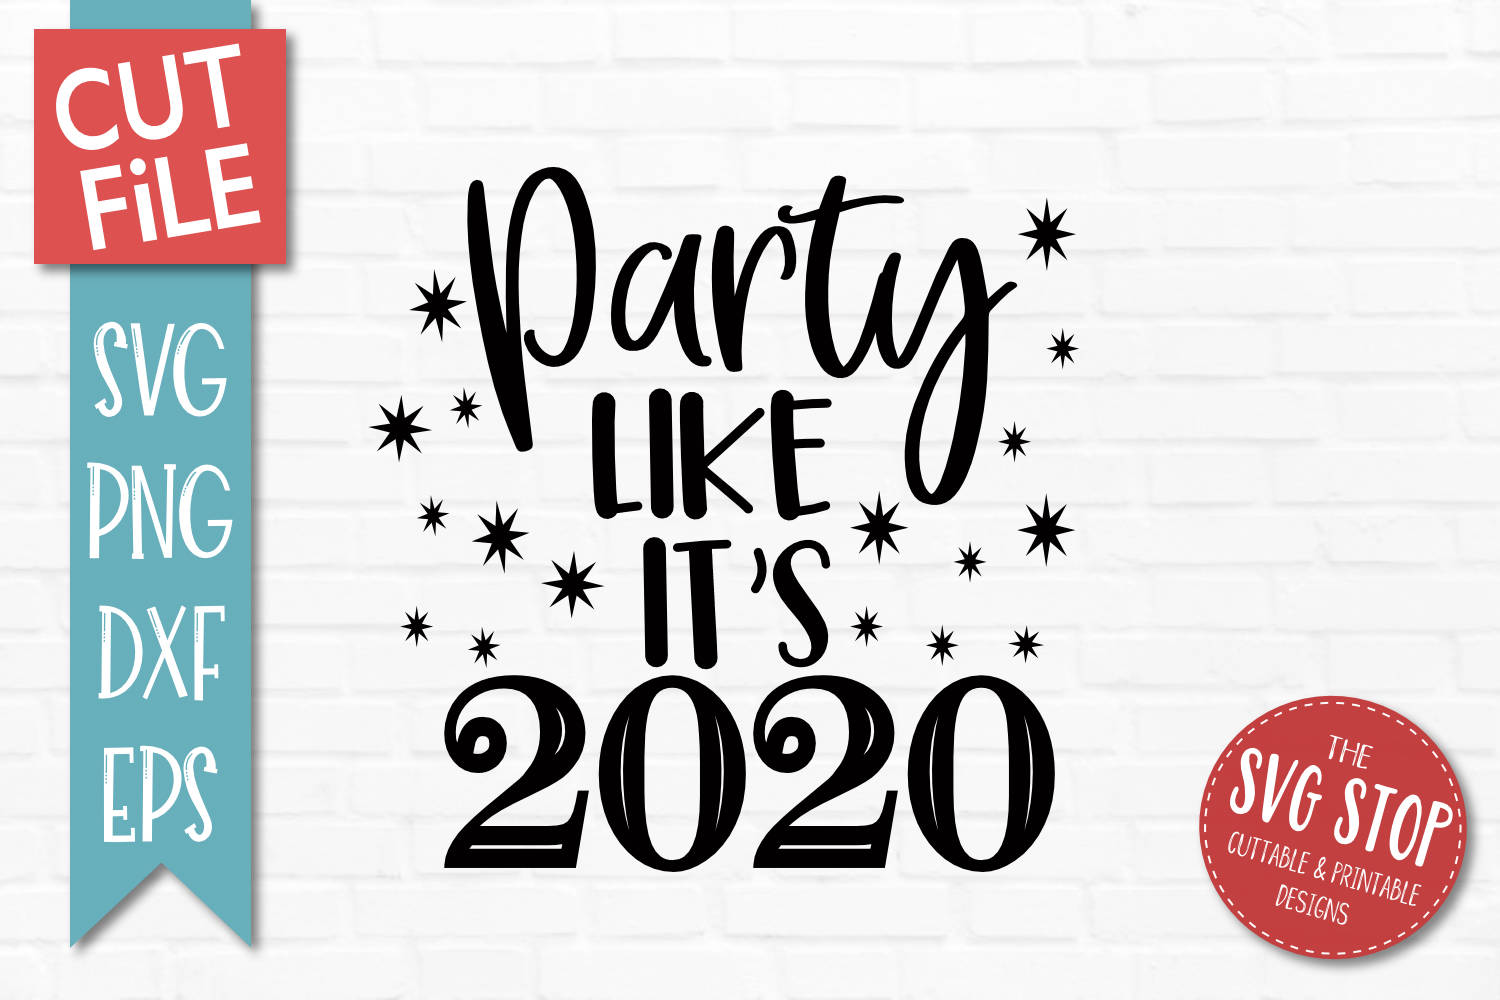 Party Like Its 2020 New Year SVG, PNG, DXF, EPS example image 1